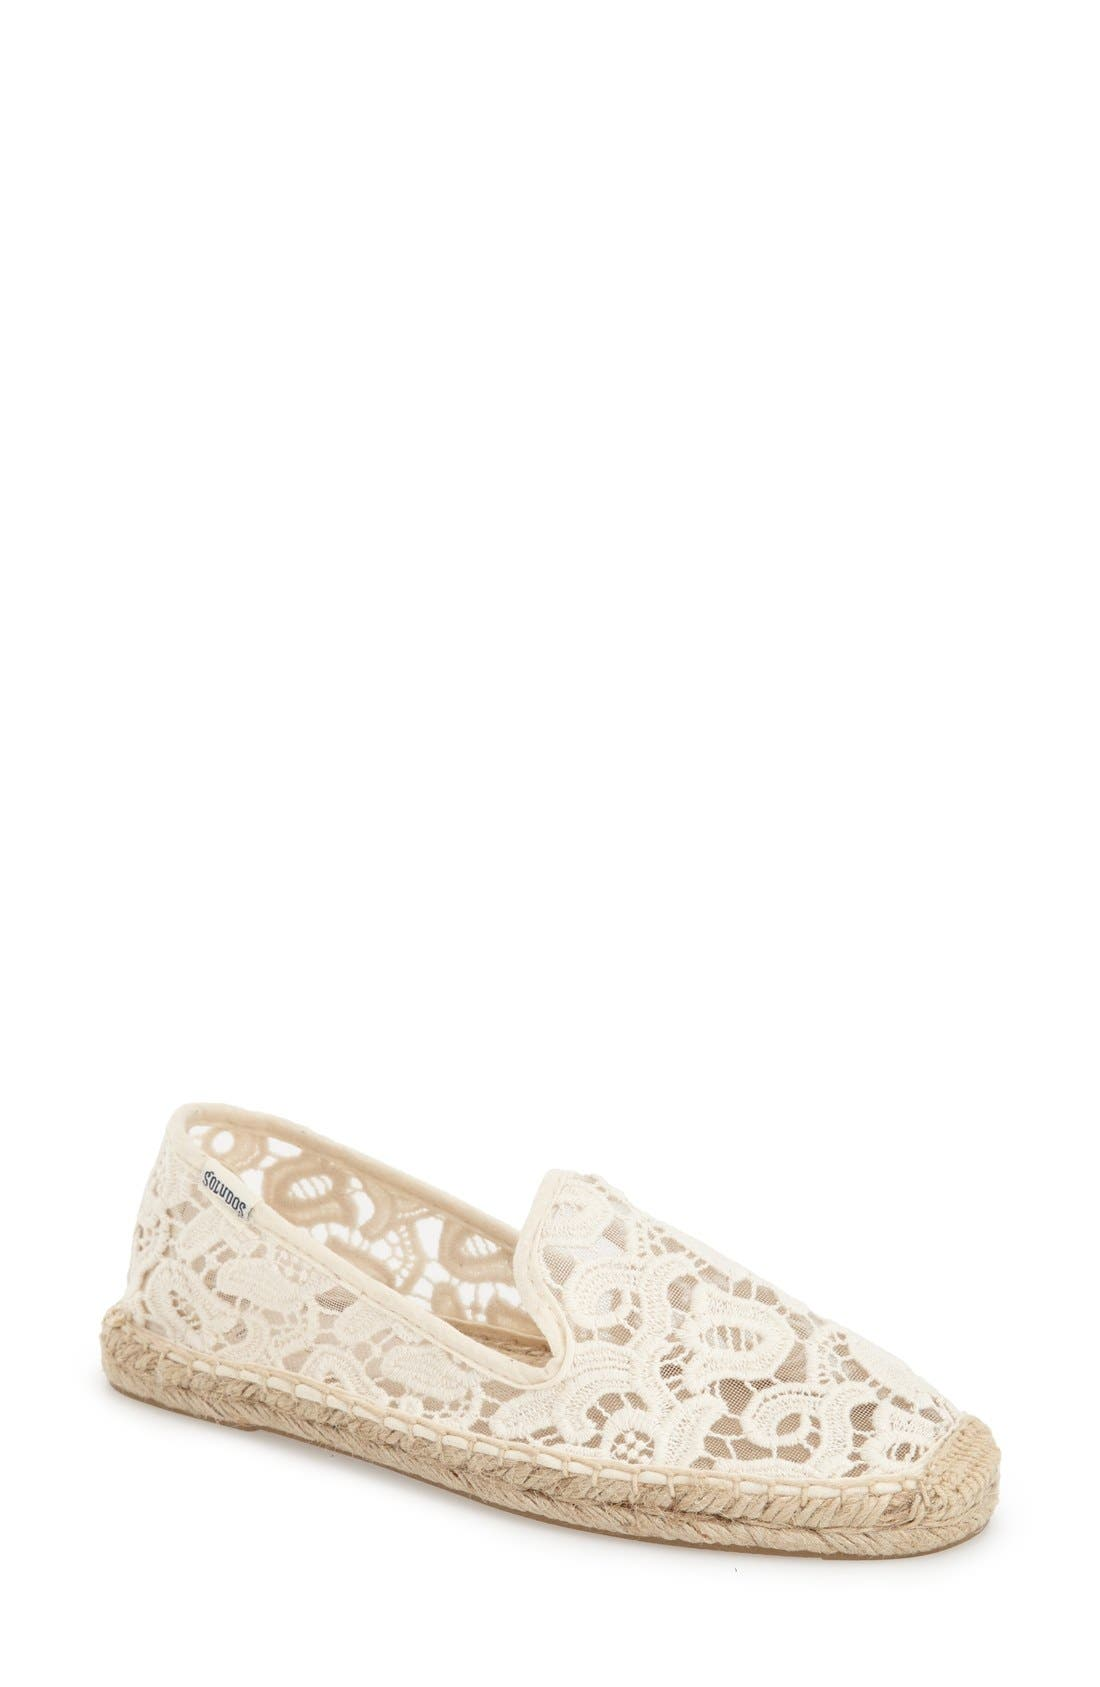 Main Image - Soludos Lace Espadrille Slip-On (Women)